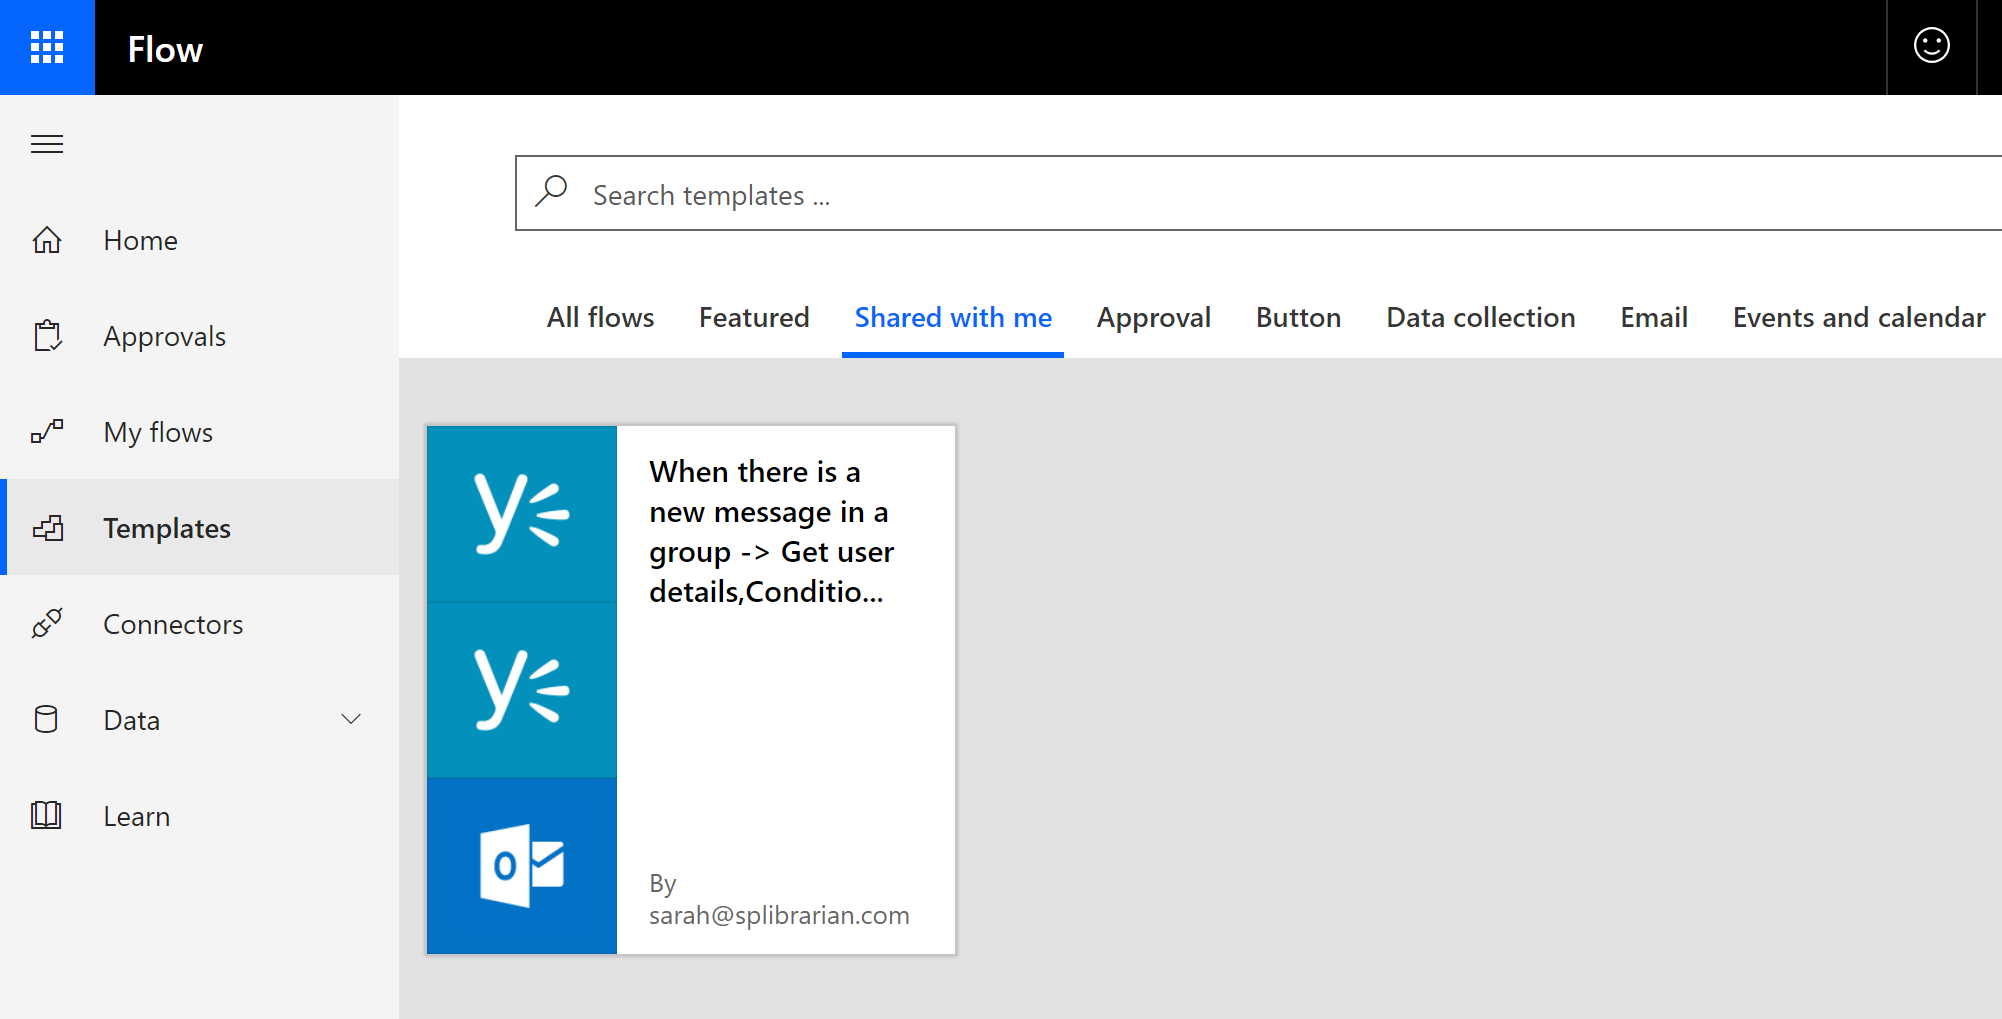 Build it with Microsoft Flow: Get a notification when a